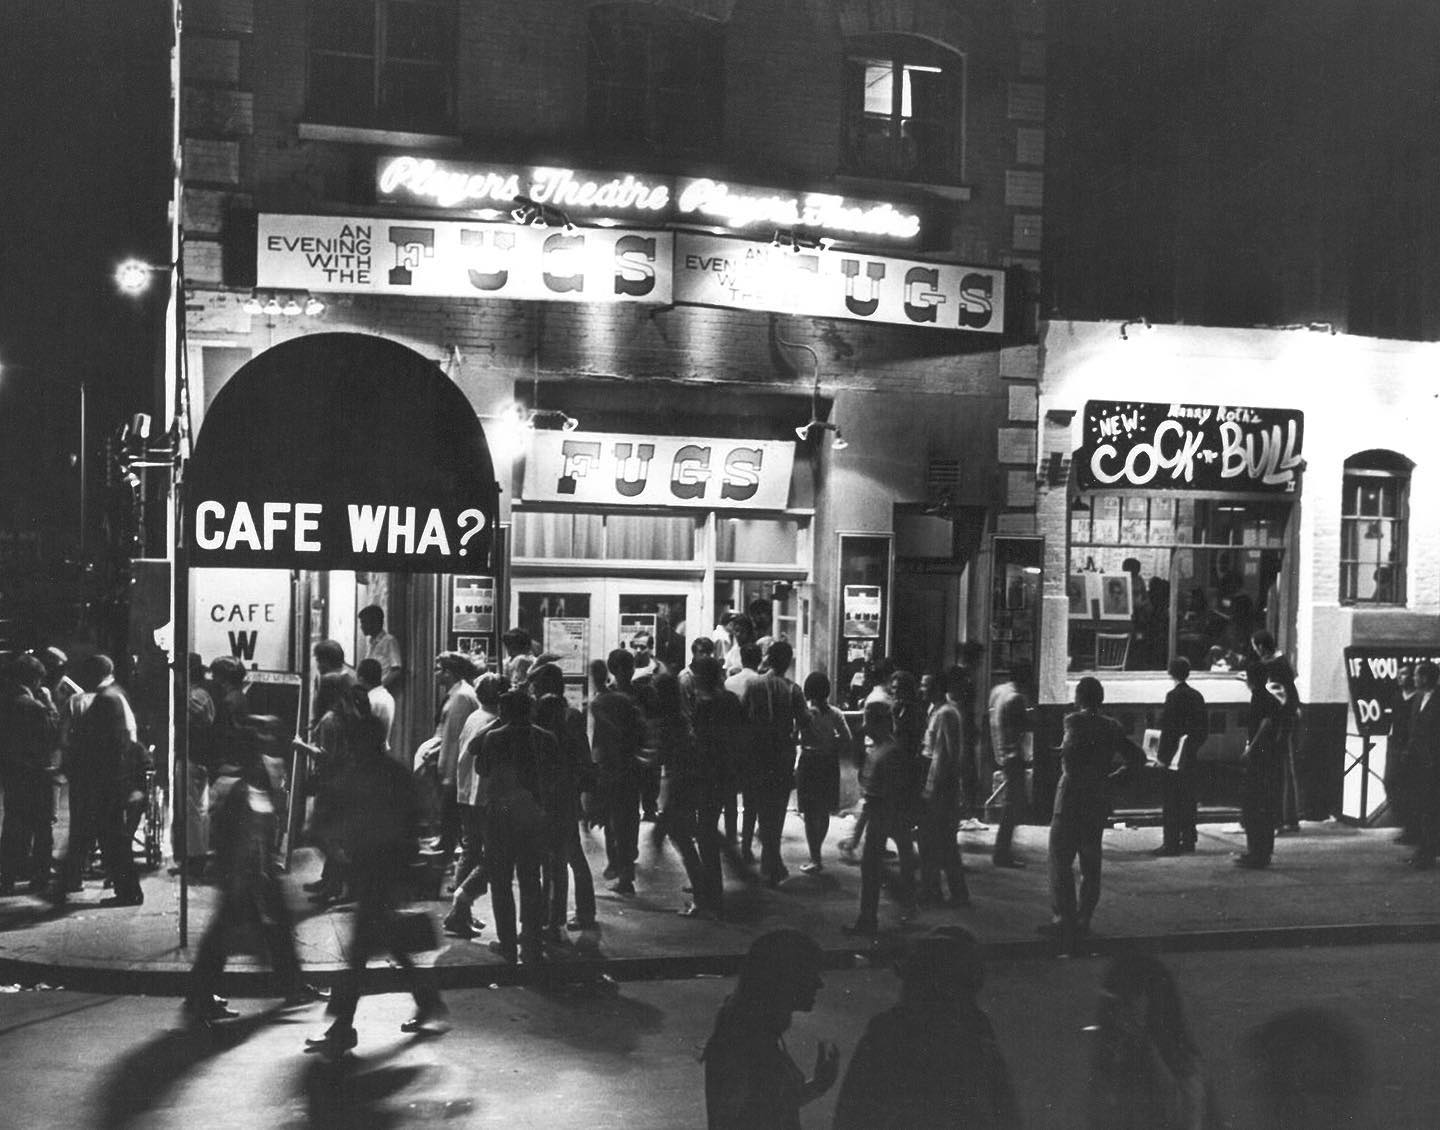 More Beats, artists, and musicians at the clubs of 1960s NYC 🏙   The first image shows people waiting outside the Cafe Wha? nightclub (113 MacDougal Street) for a performance by the Fugs, an irreverent underground rock band formed by poets Ed Sanders and Tuli Kupferberg. May 22, 1966  The second image shows the first performance of Bob Dylan performing with Karen Dalton and Fred Neil, at Cafe Wha? February 6, 1961.  © Fred W. McDarrah/MUUS Collection